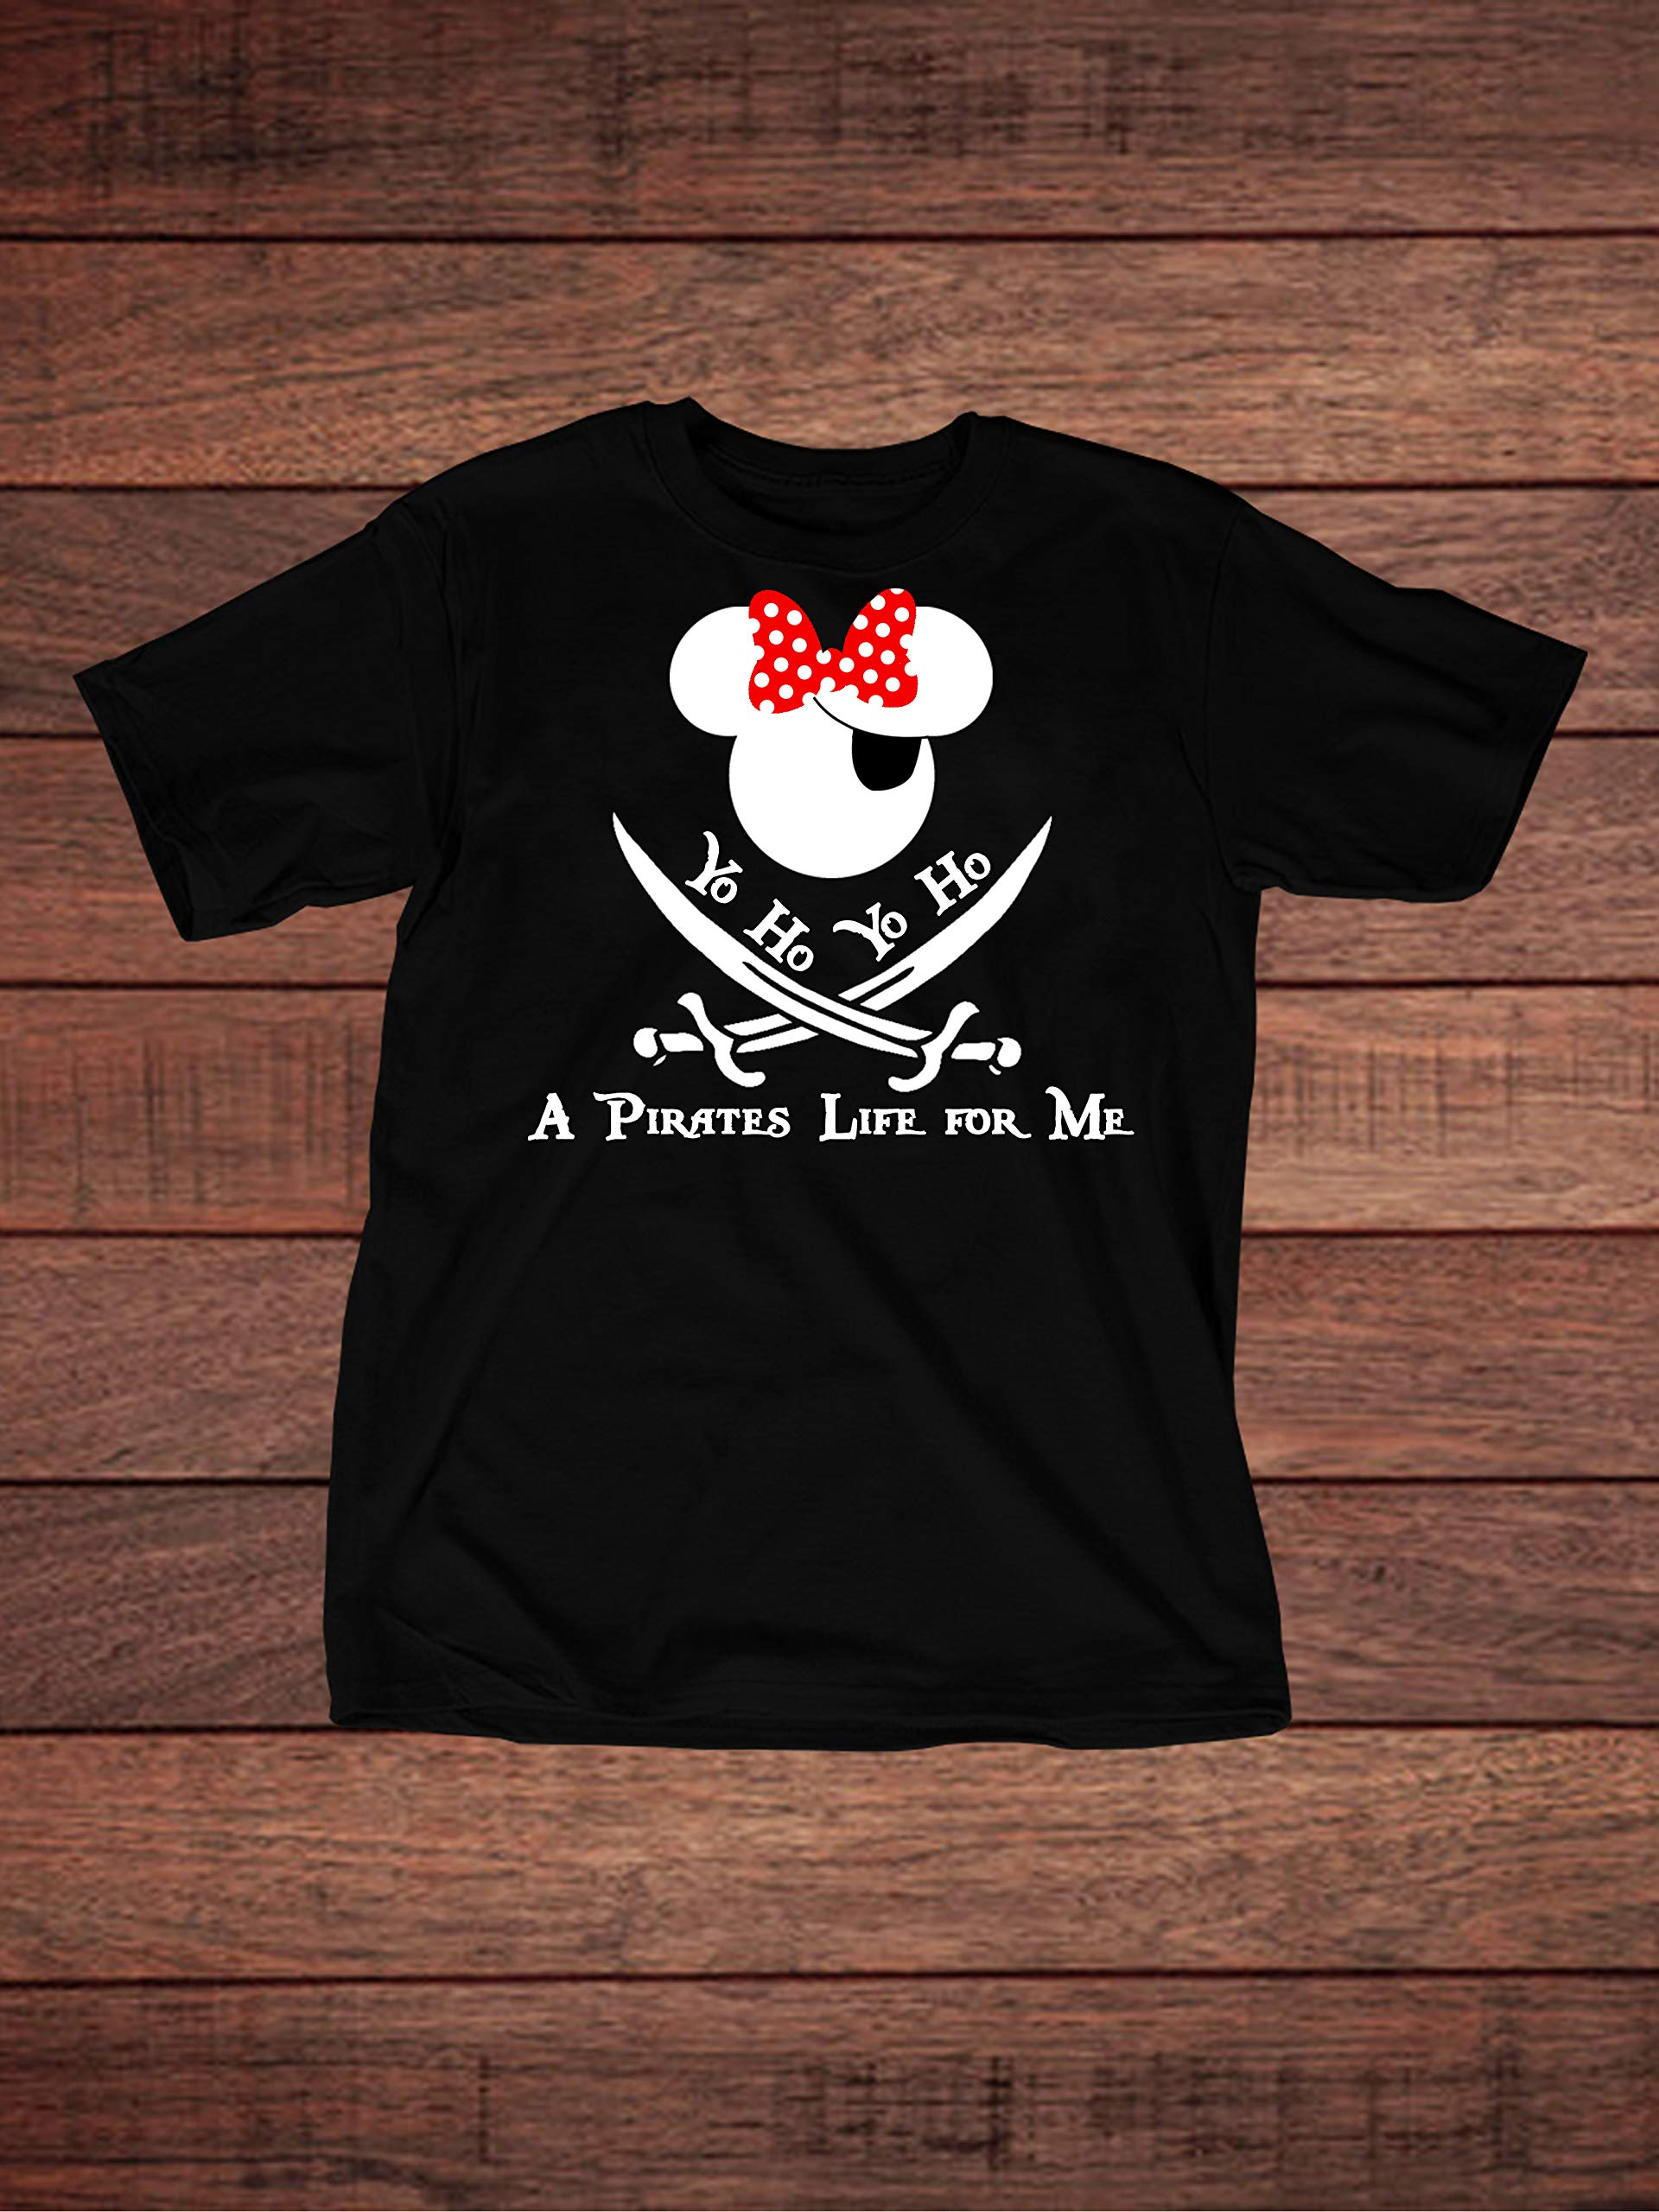 Minnie Mouse - Disney Pirates of the Caribbean Inspired Adult T-Shirt by The Disney Nation